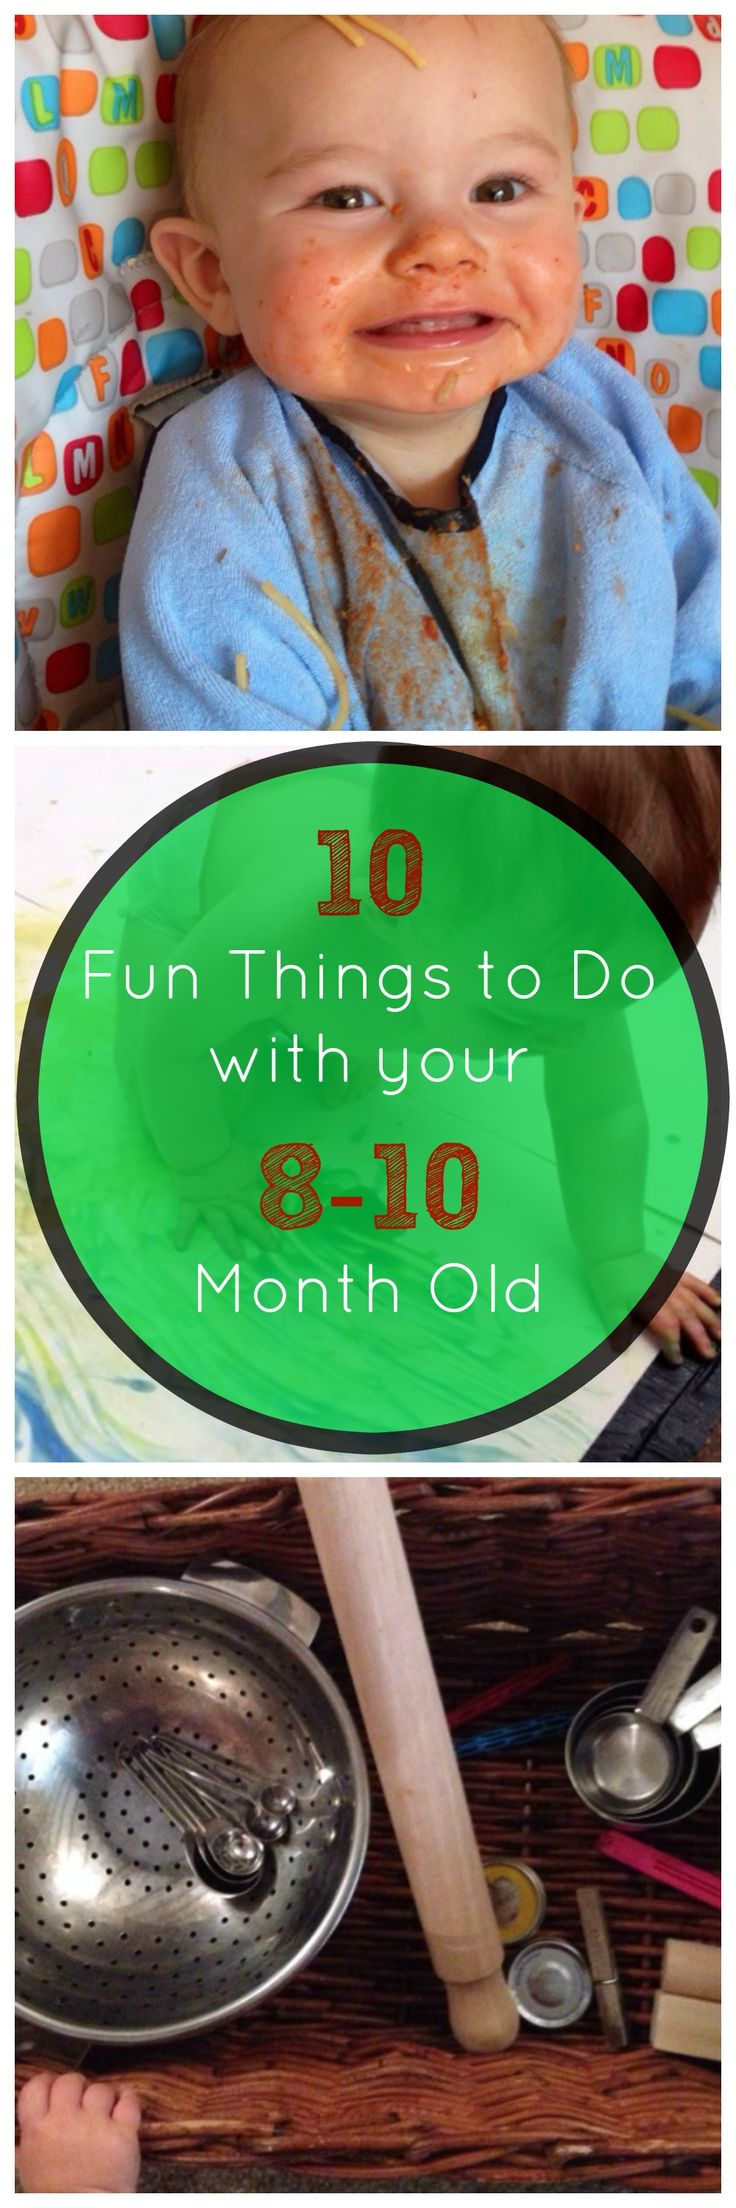 Activities for 8-10 month old babies